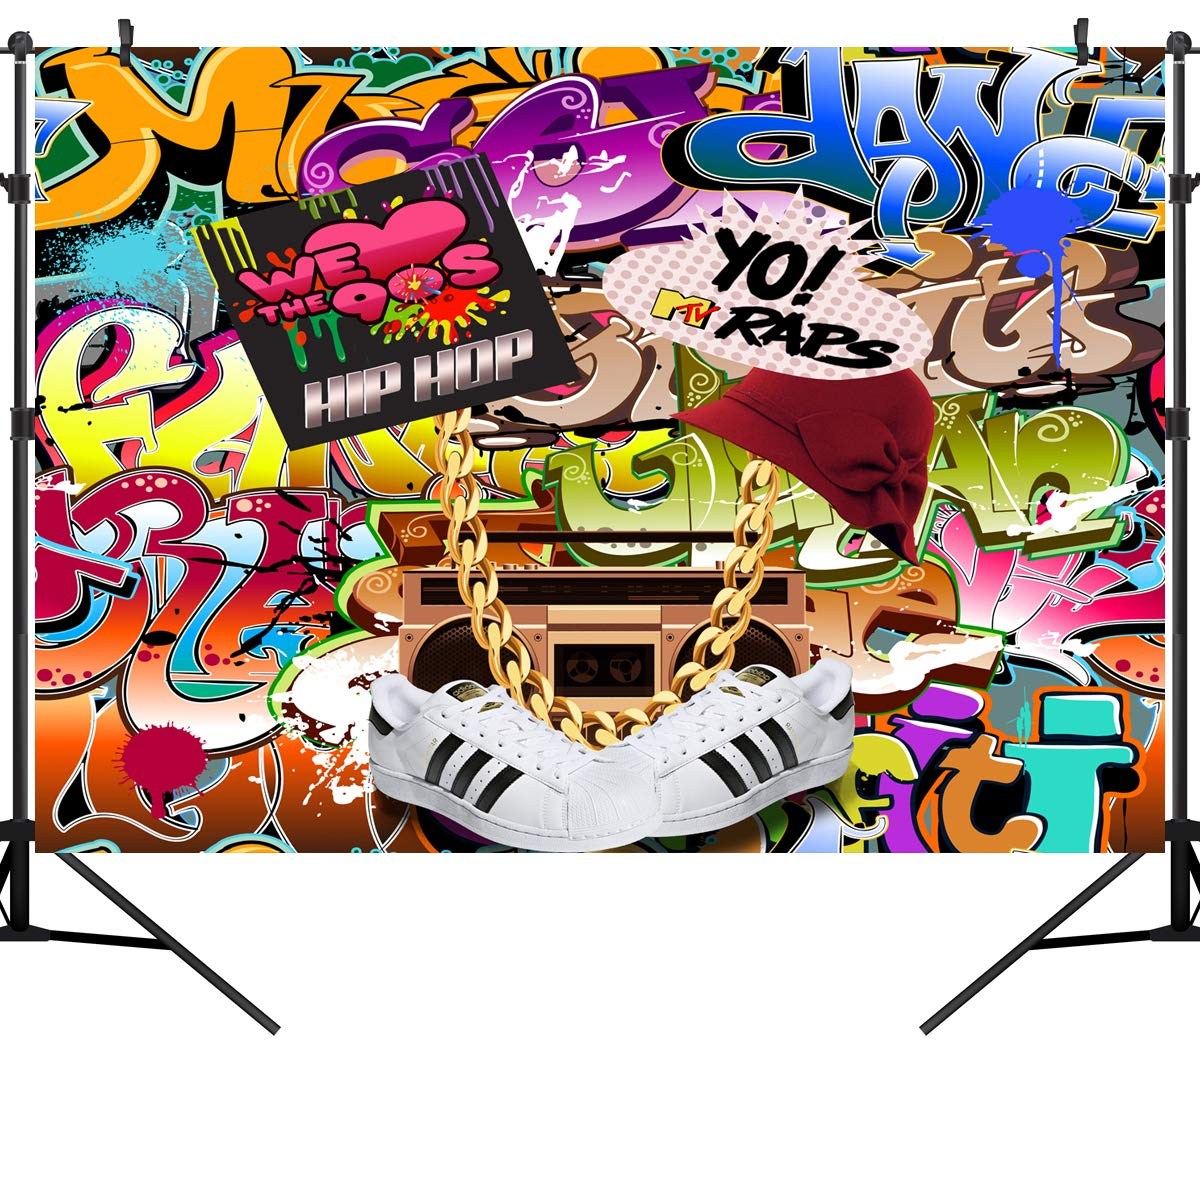 OUYIDA 9X6FT Seamless Hip Hop Graffiti Pictorial Cloth Photography Background Computer-Printed Vinyl Backdrop PCK06A by OUYIDA